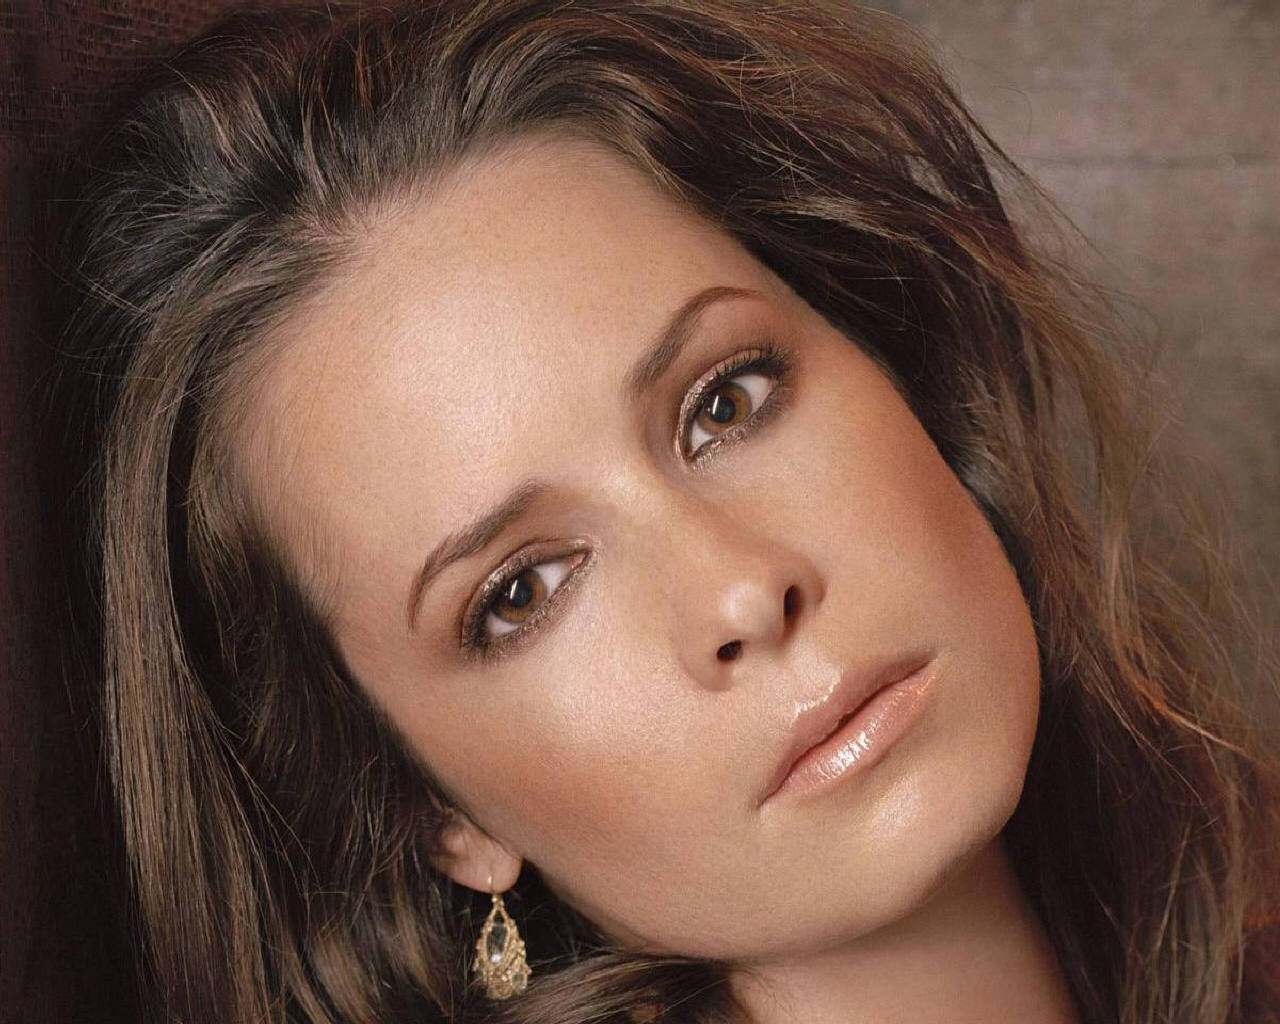 http://www.fanpop.com/clubs/charmed-in-tree-hill/images/10987272/title/holly-marie-combs-photo